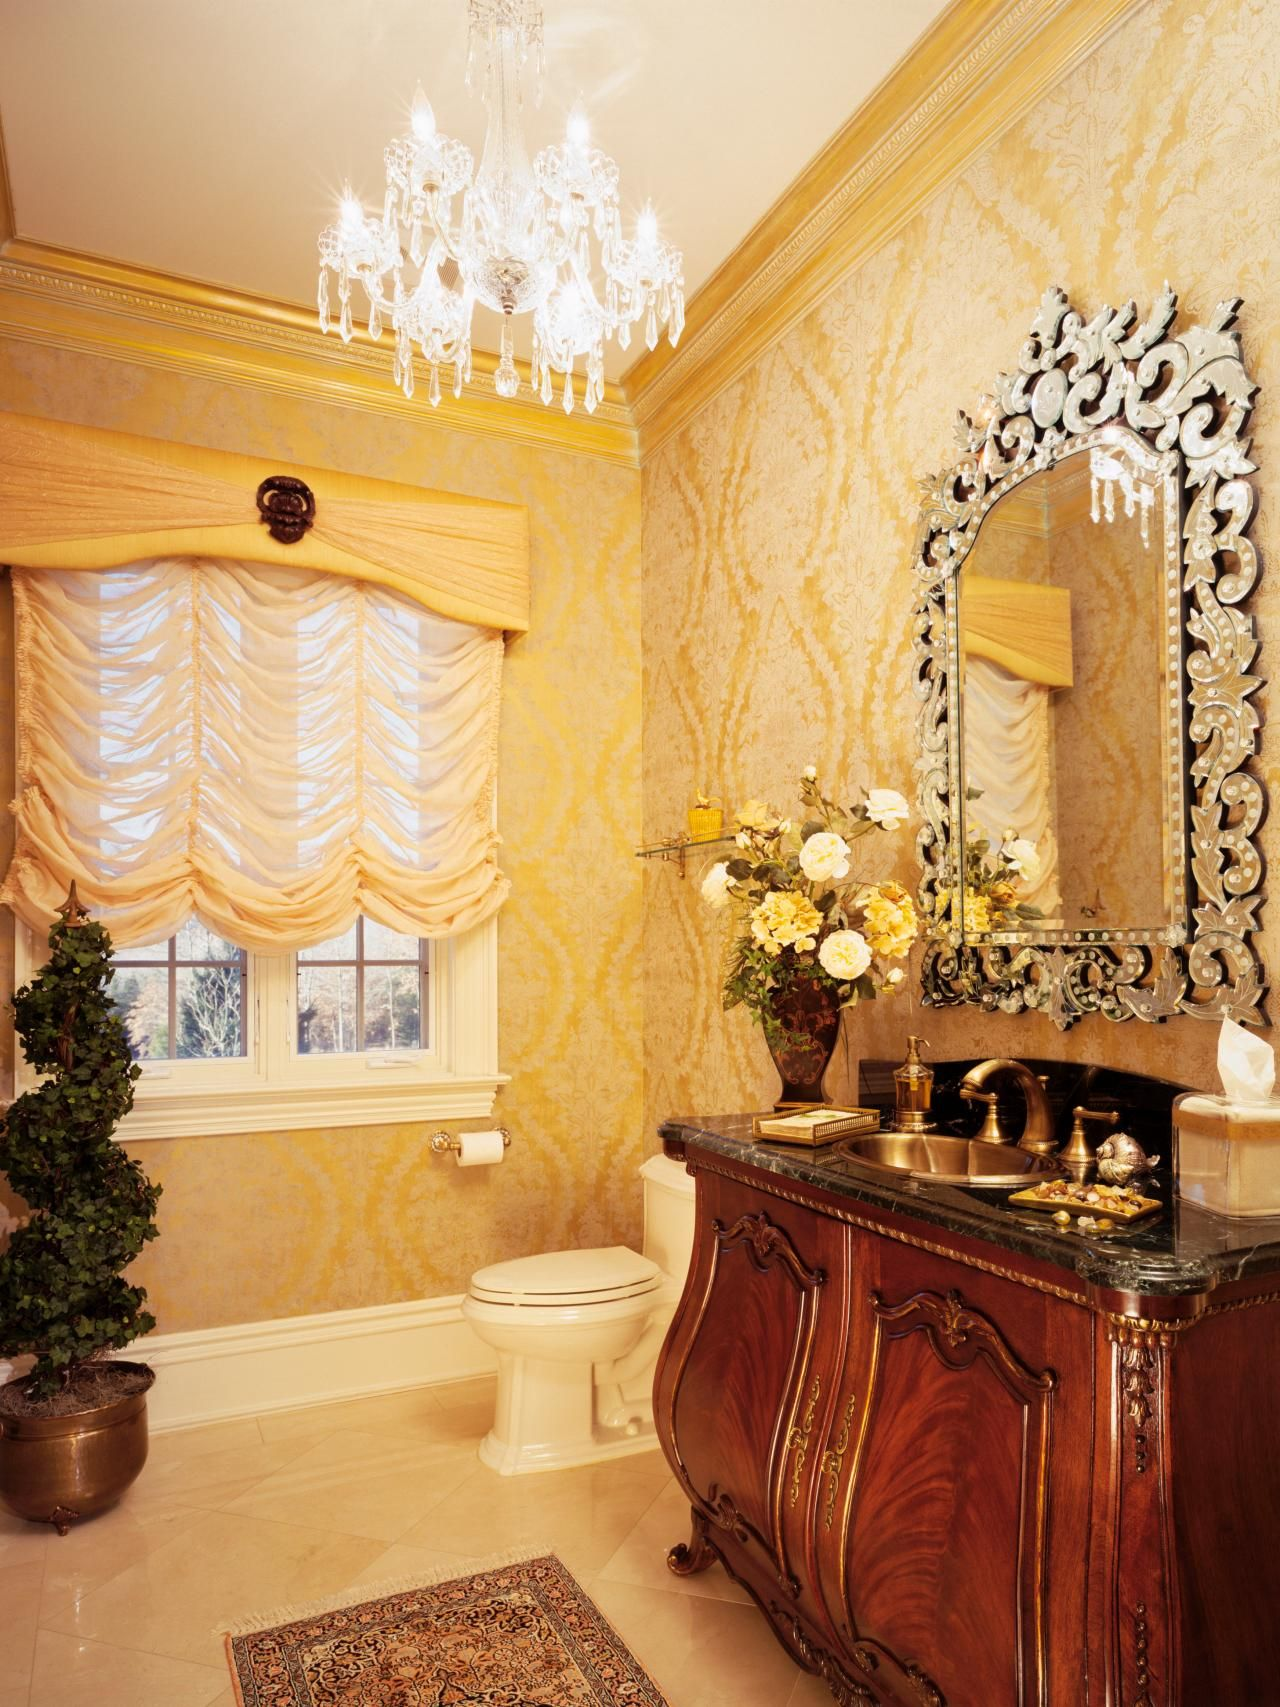 Bathroom Pictures: 99 Stylish Design Ideas You\'ll Love | Pinterest ...